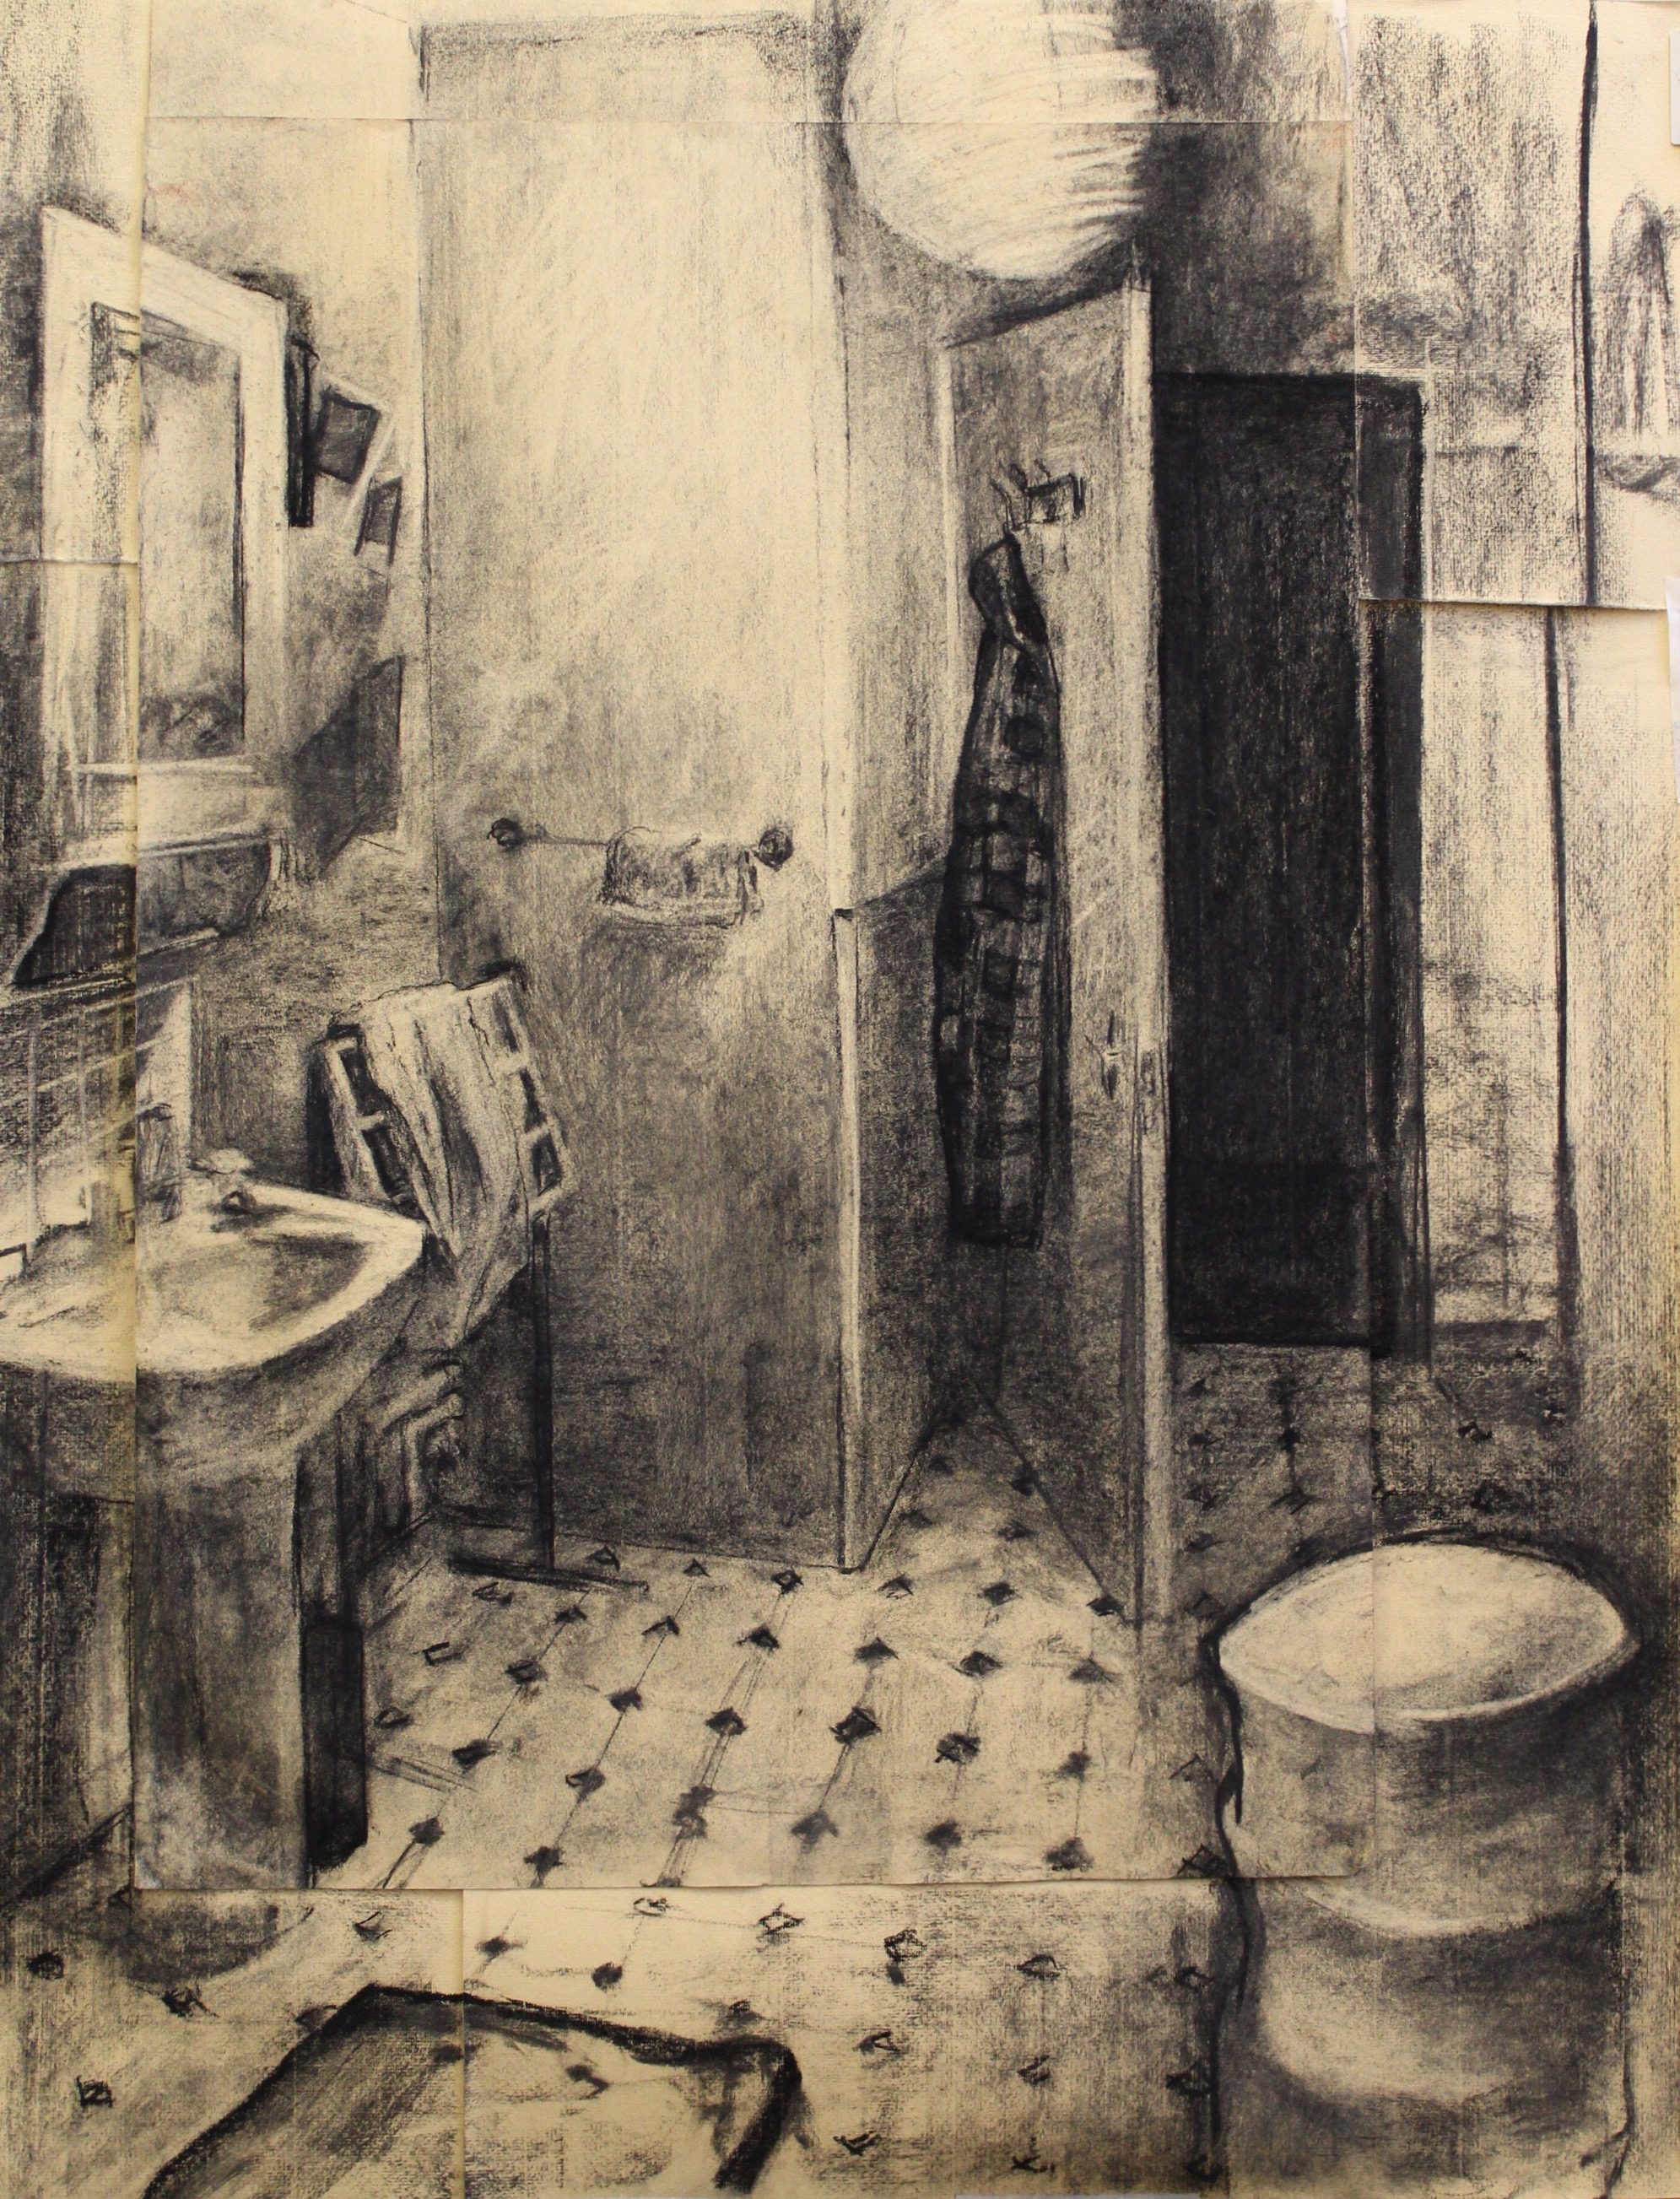 'Bathroom' Tim Patrick Charcoal on Paper, 100x80cm, 2017